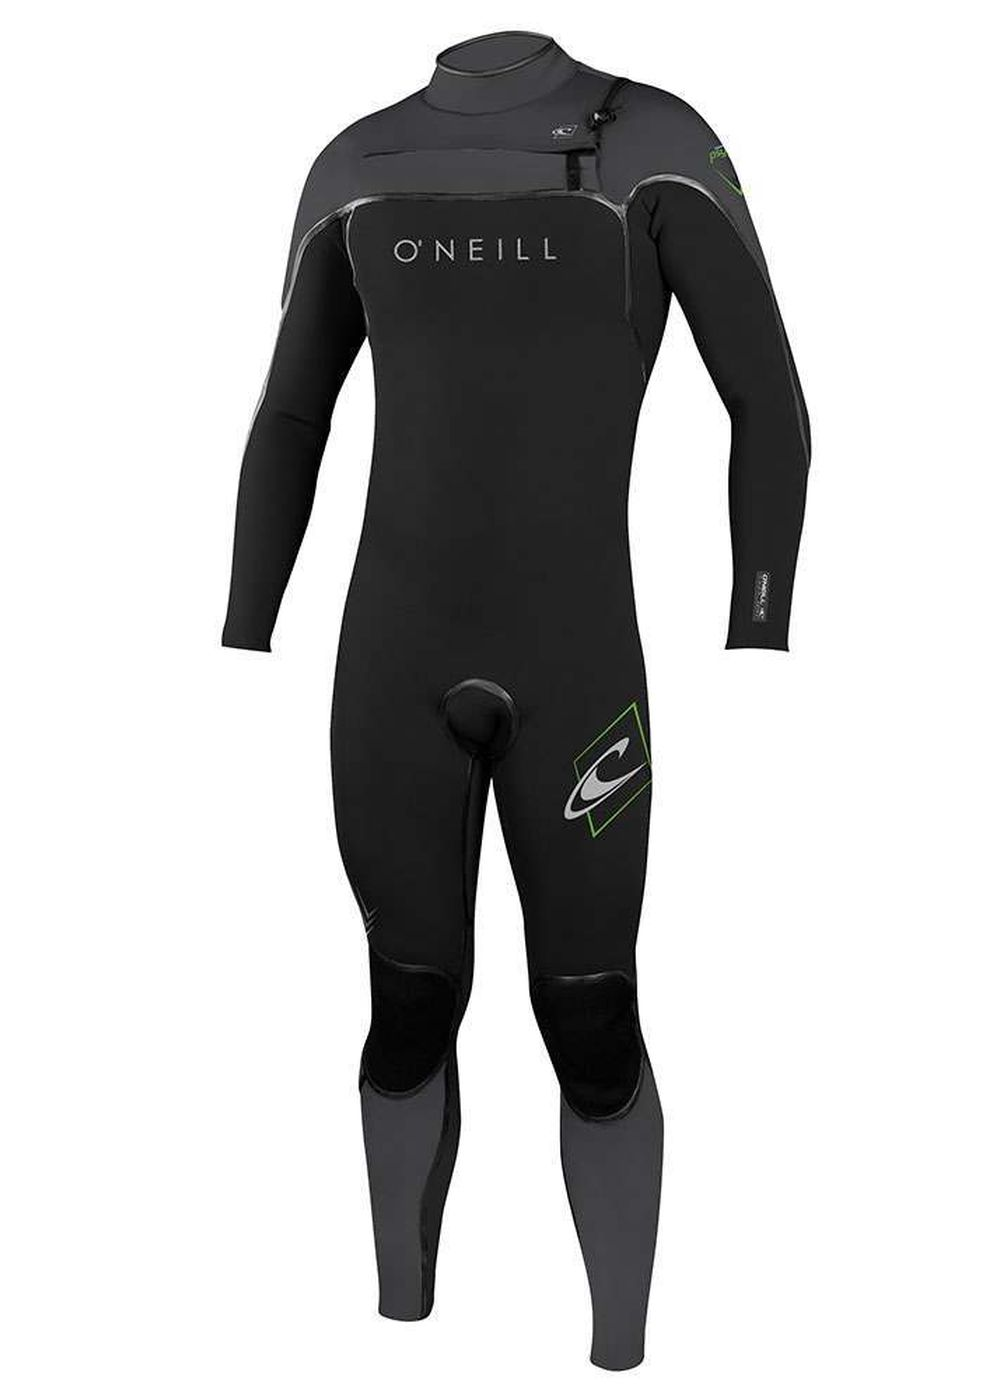 Oneill Psycho One Fz 5/4 Fsw Wetsuit 2017 Blk/smk Picture